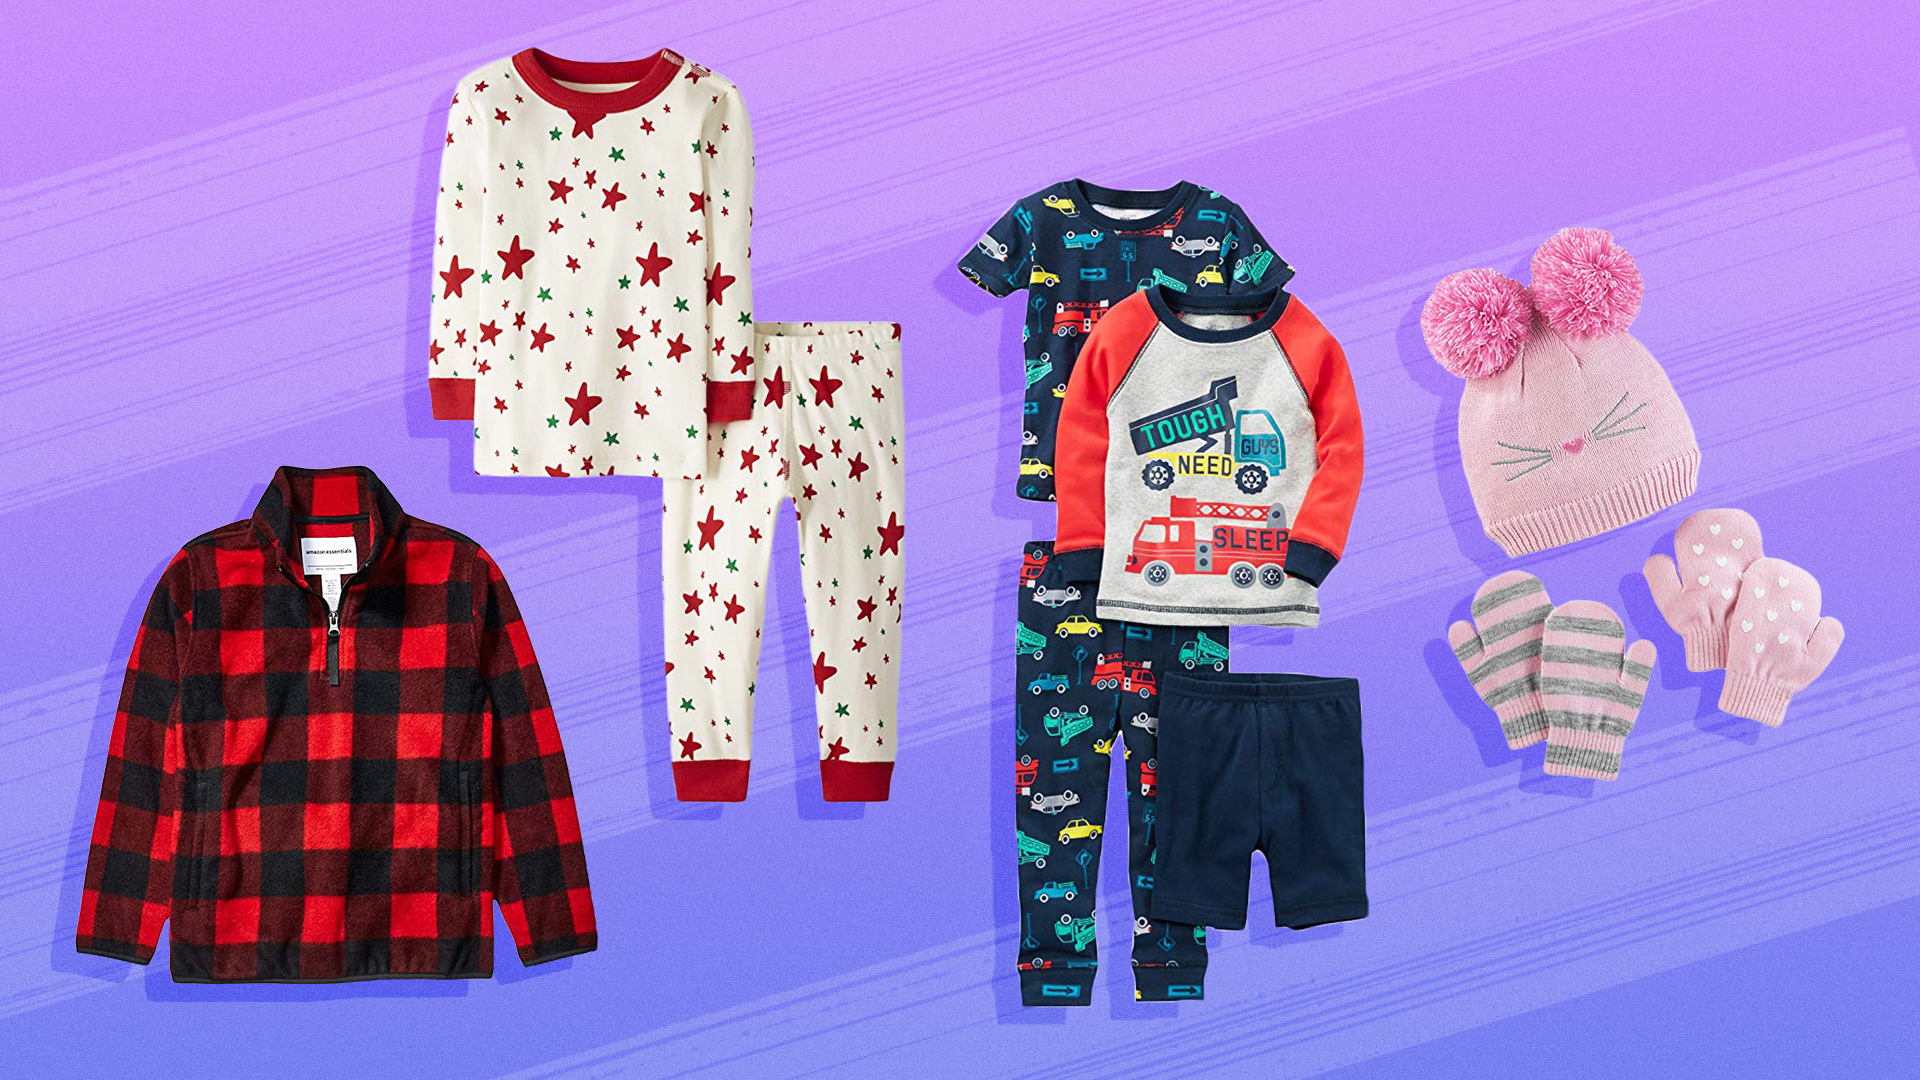 Cyber Monday Amazon Kids Fashion Steals Clothing Up To 50 Off Sheknows